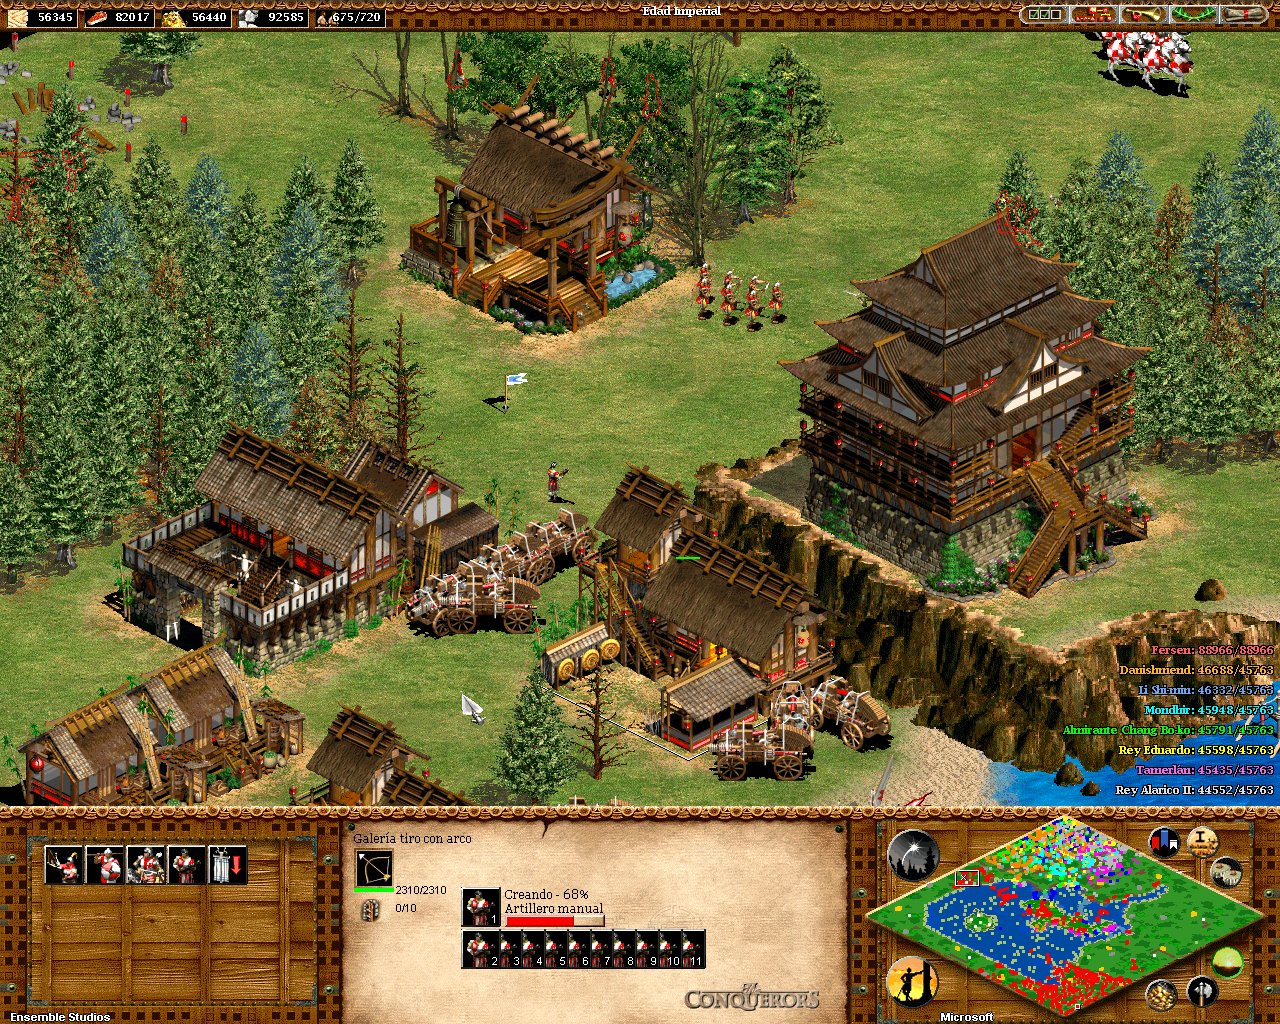 patch age of empires 2 windows 7